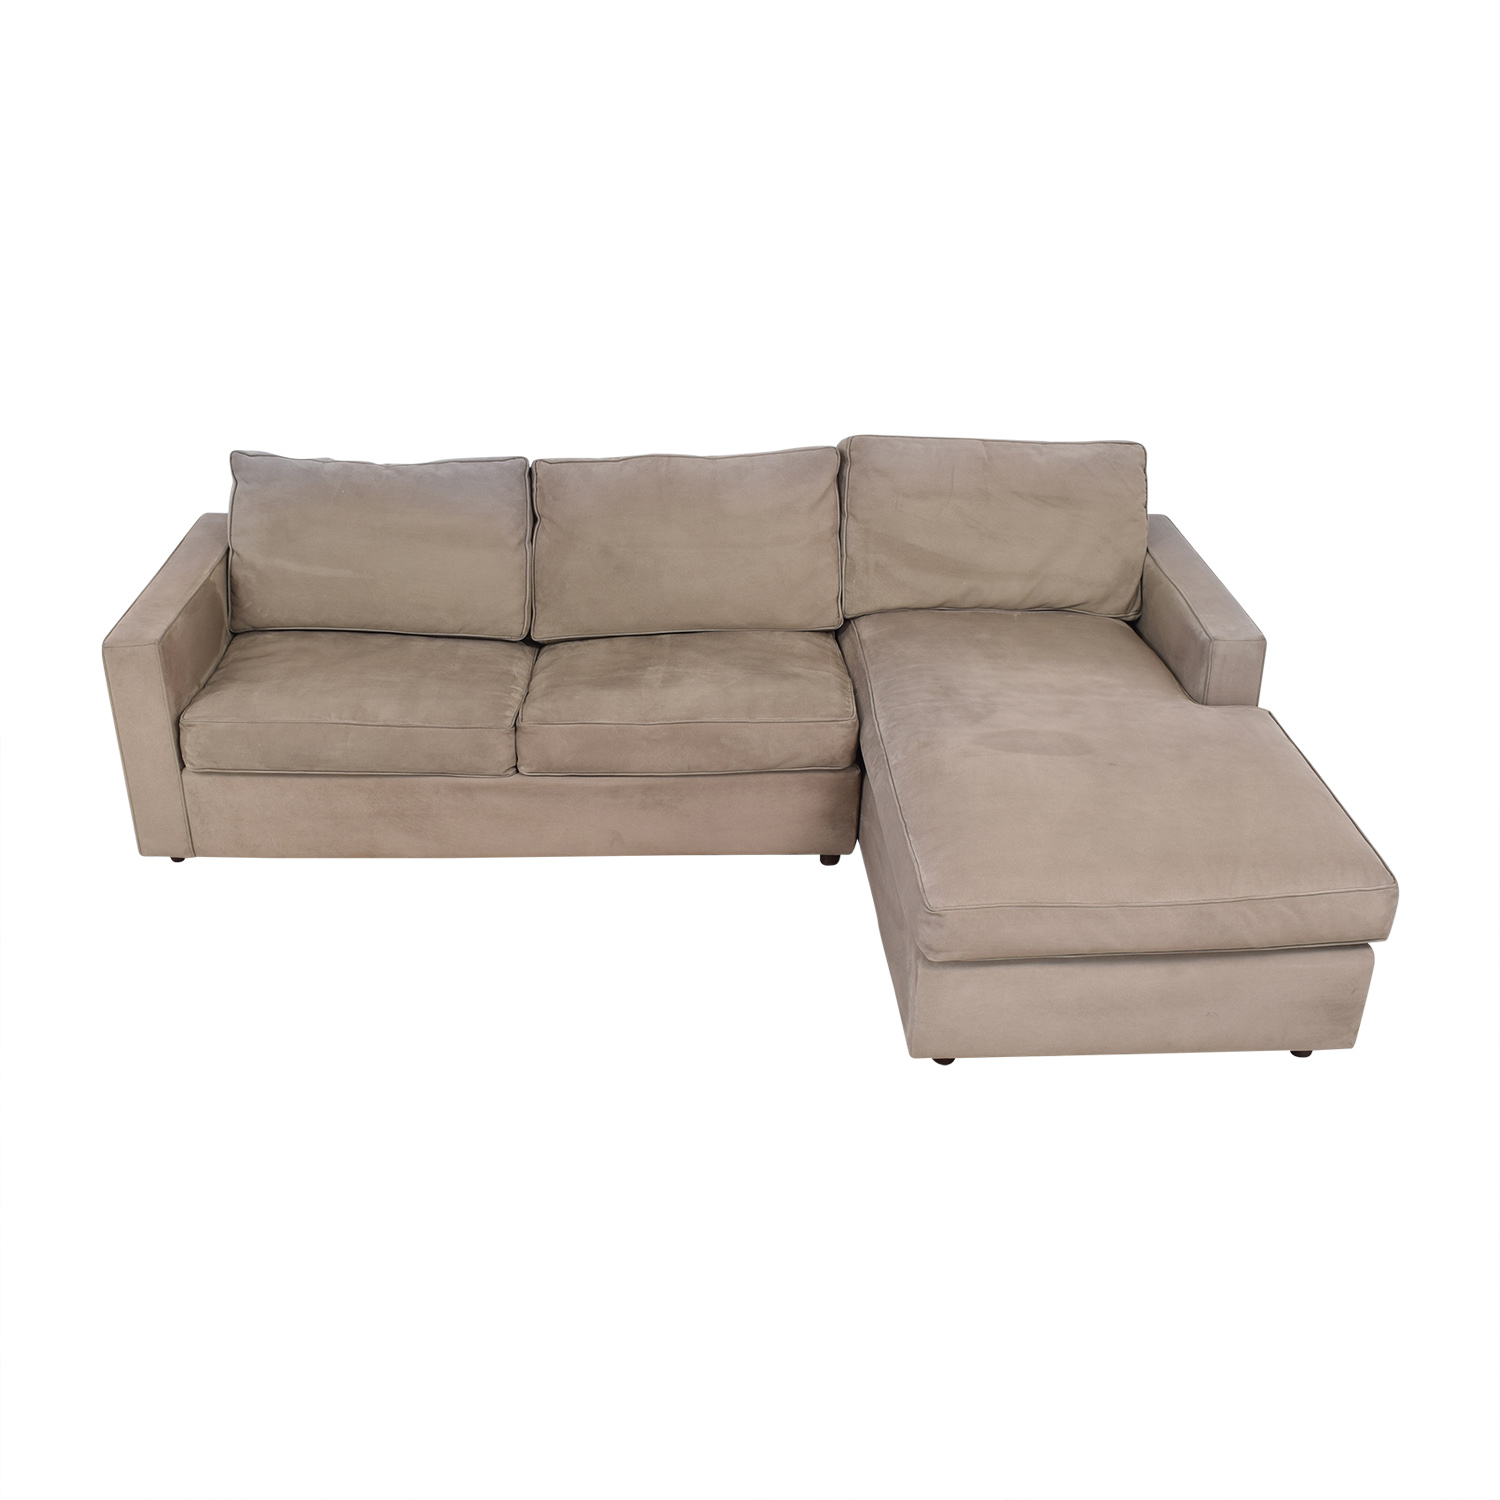 shop Room & Board Full Sleeper Sofa with Chaise Room & Board Sofas